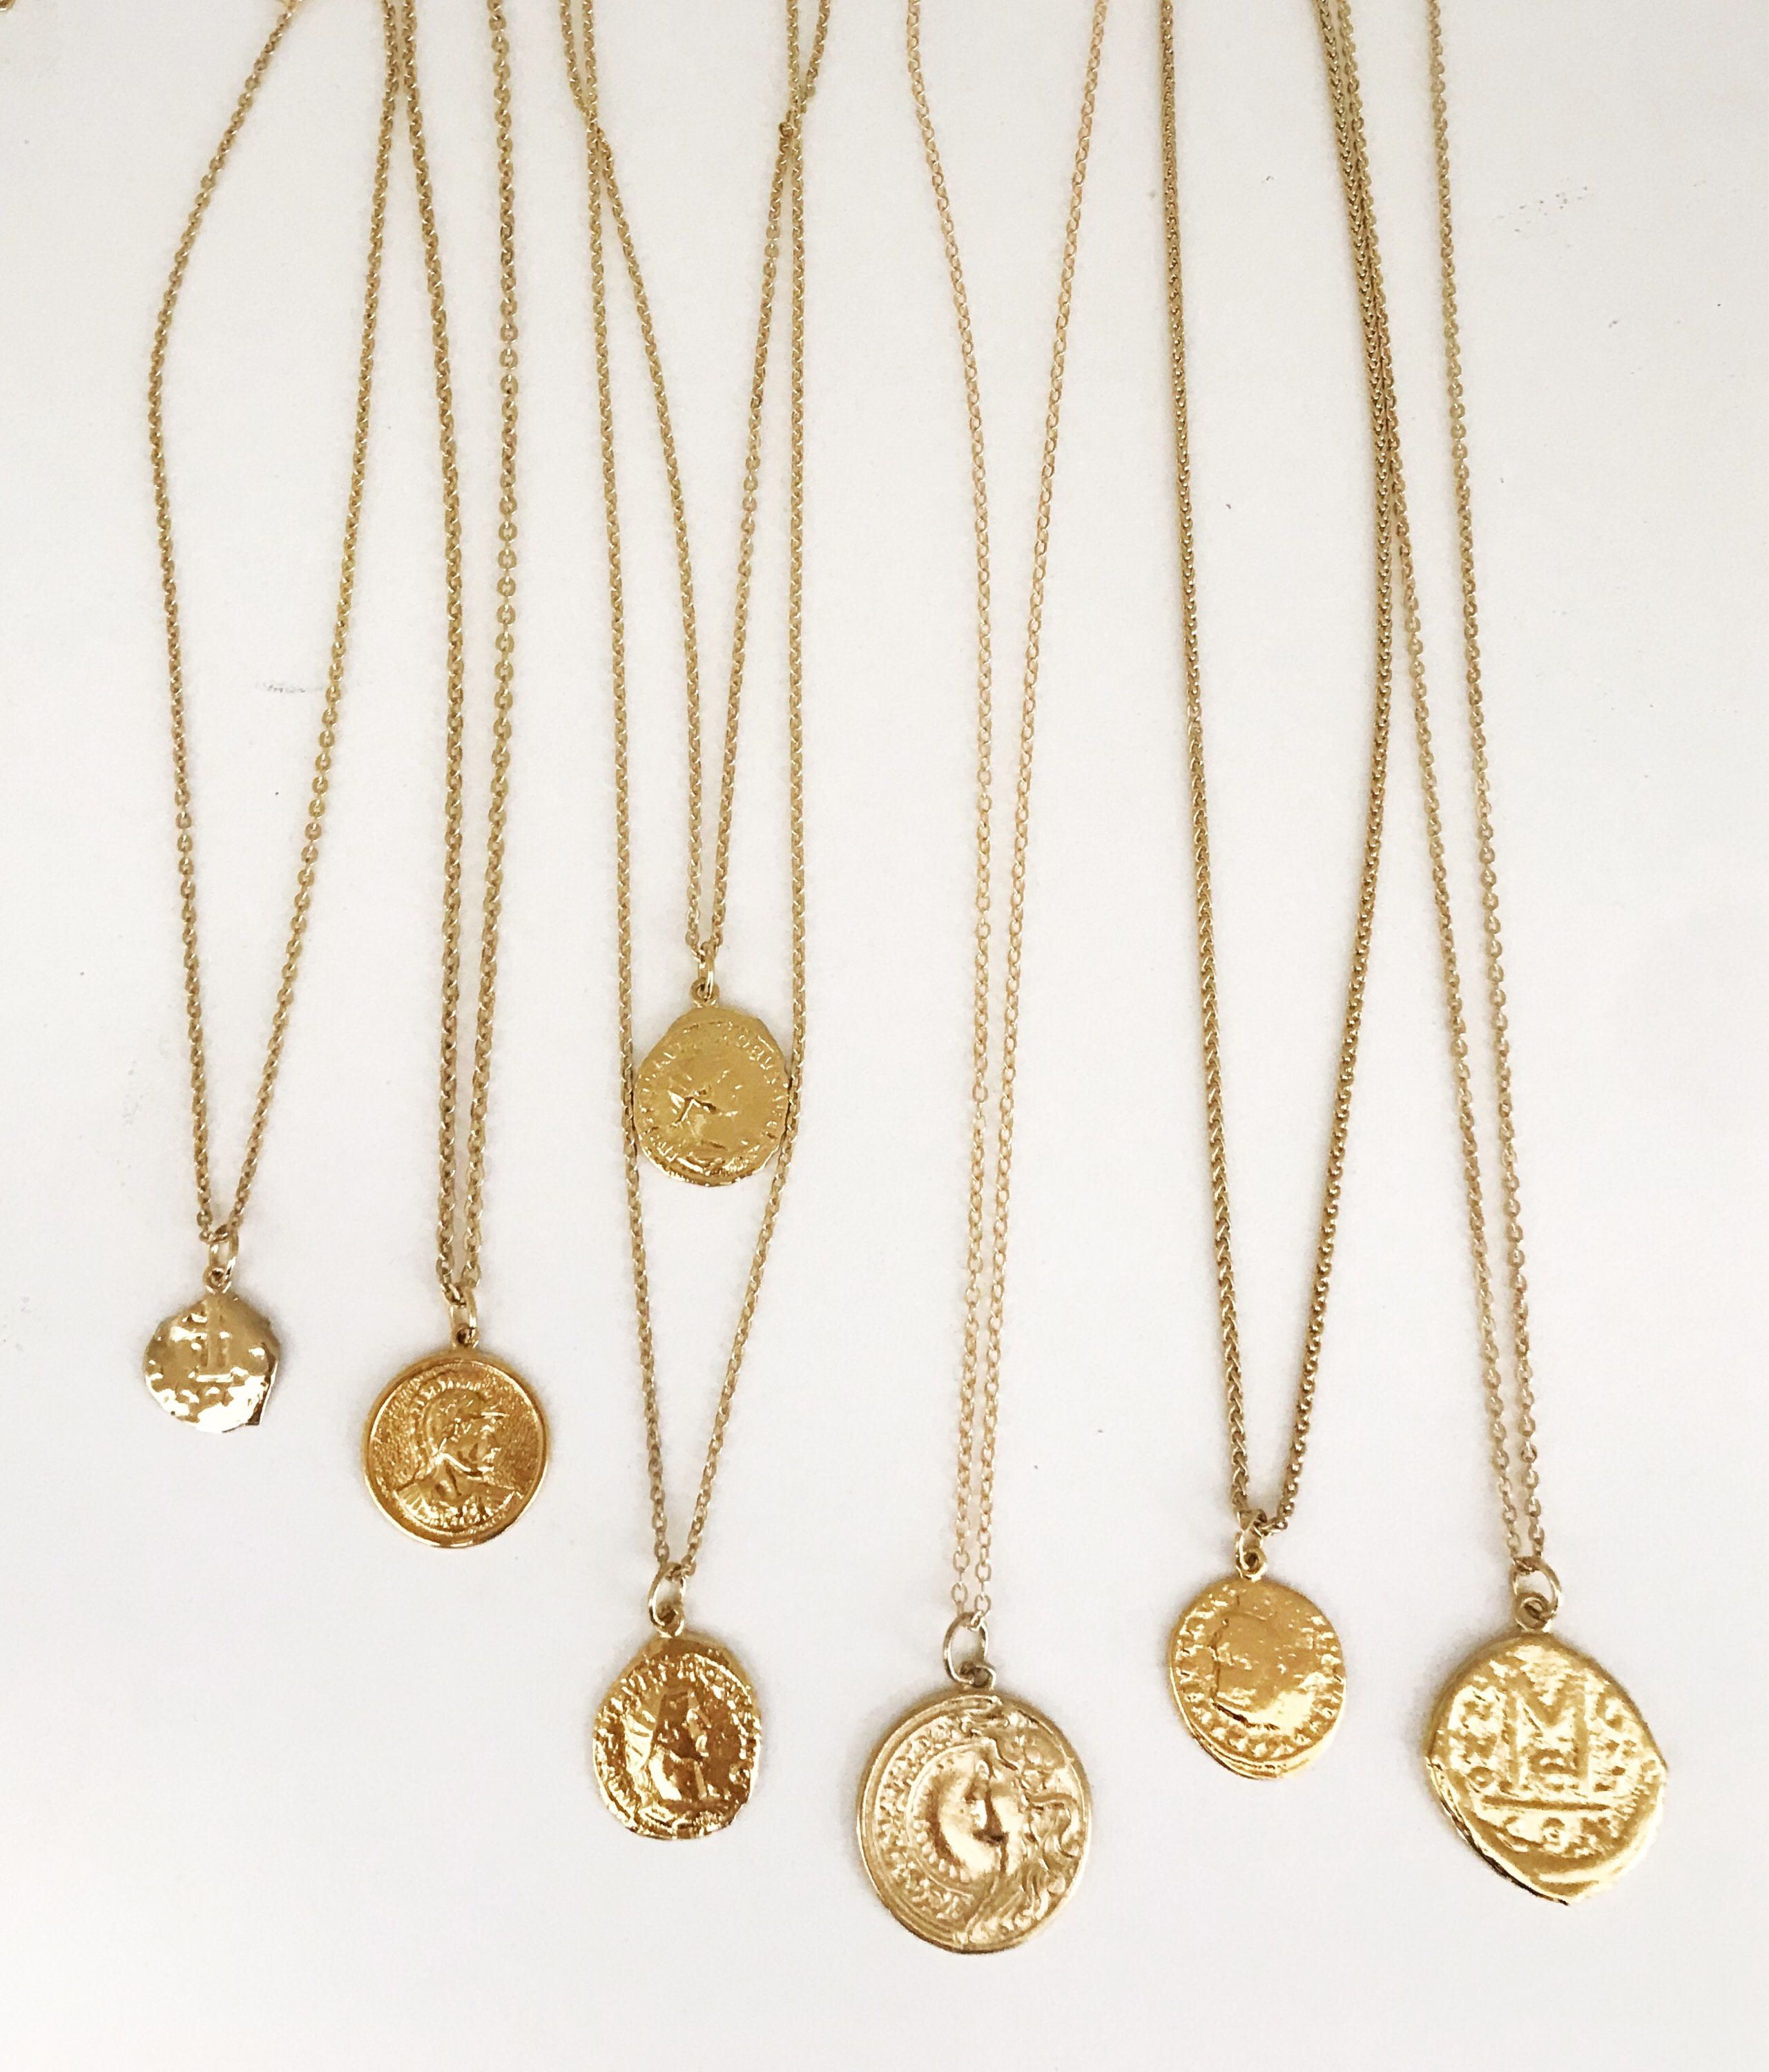 nfp chupi lockets necklace irish img coin farthing